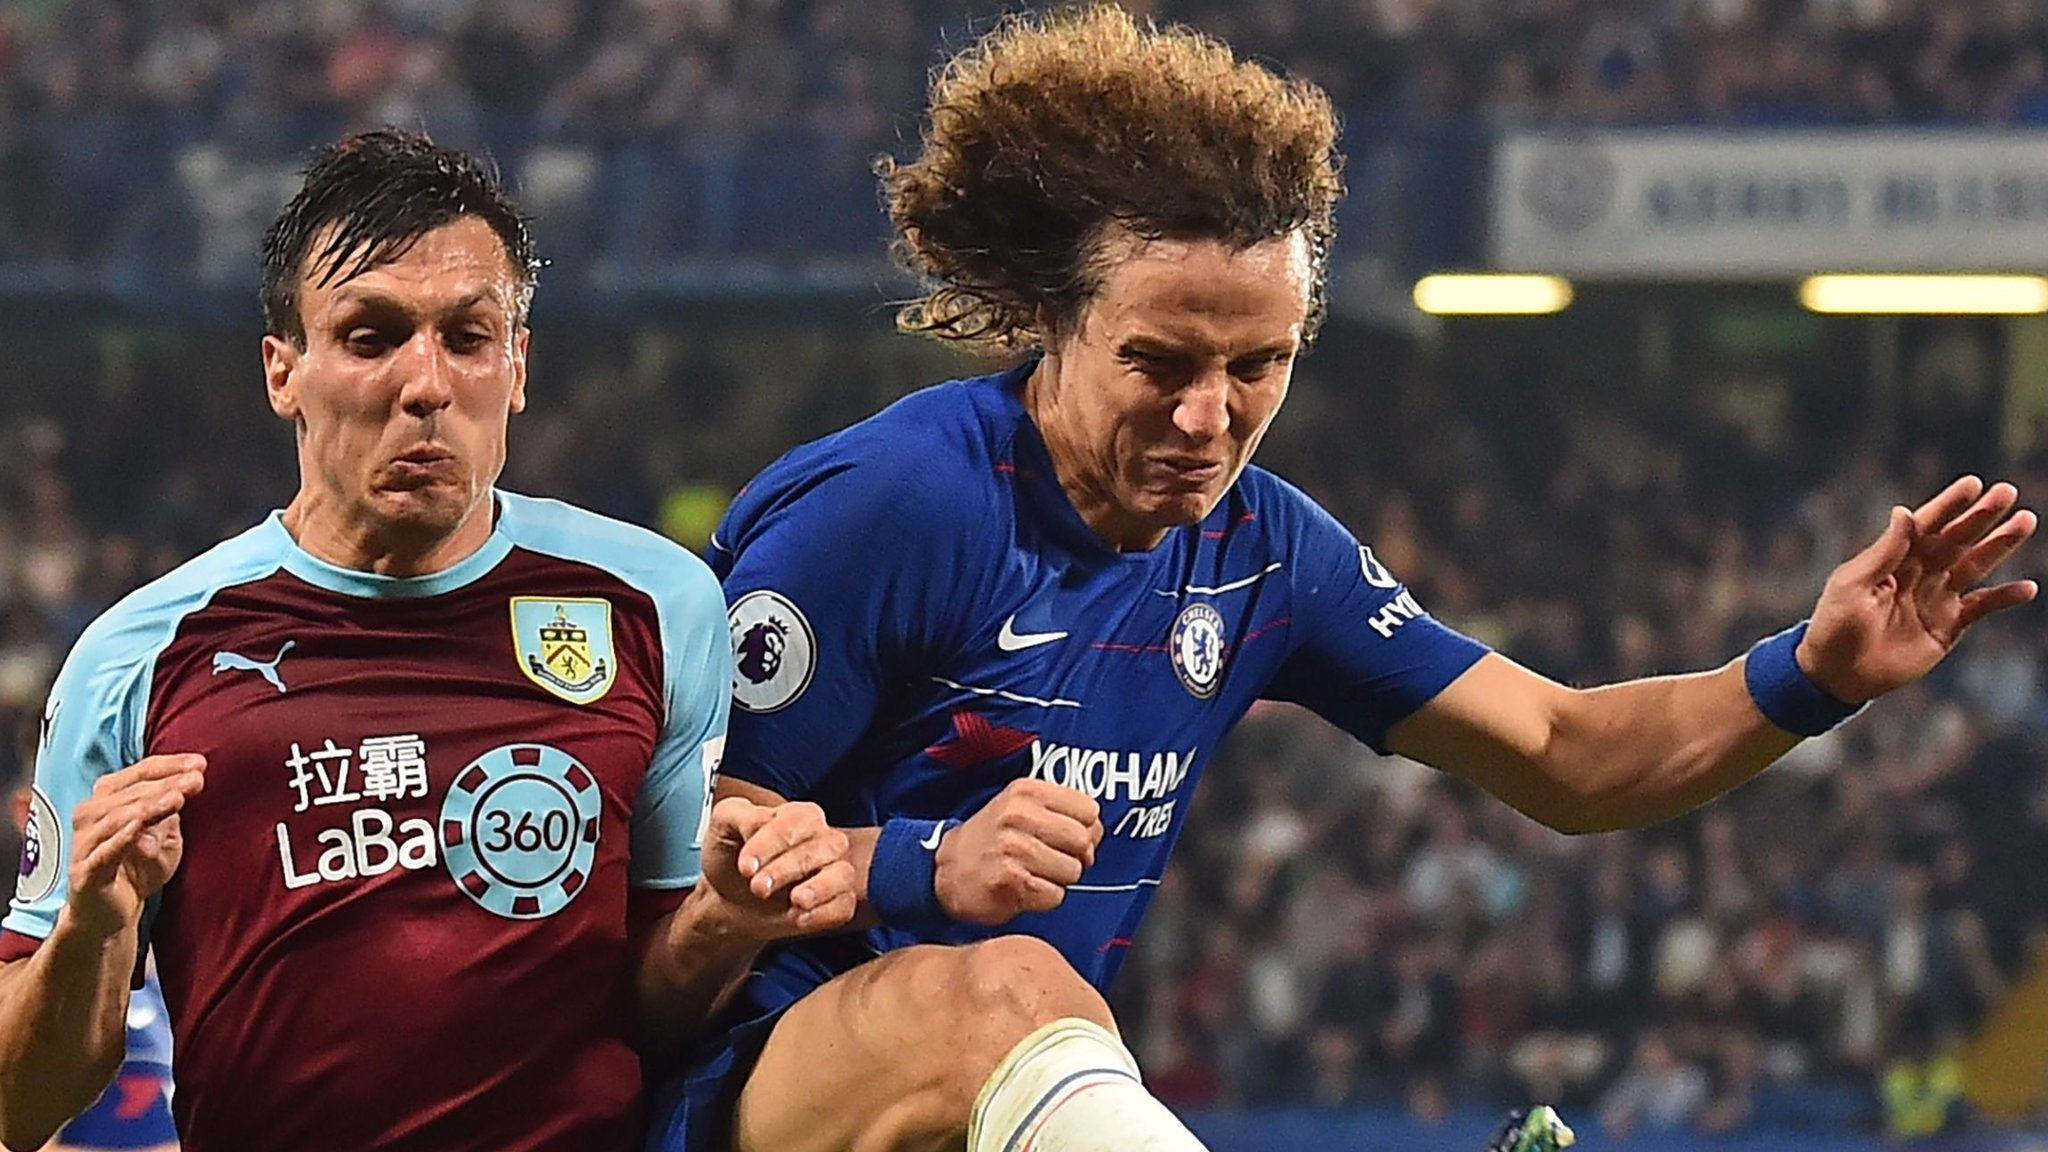 David Luiz: Chelsea defender accuses Burnley of time-wasting after draw